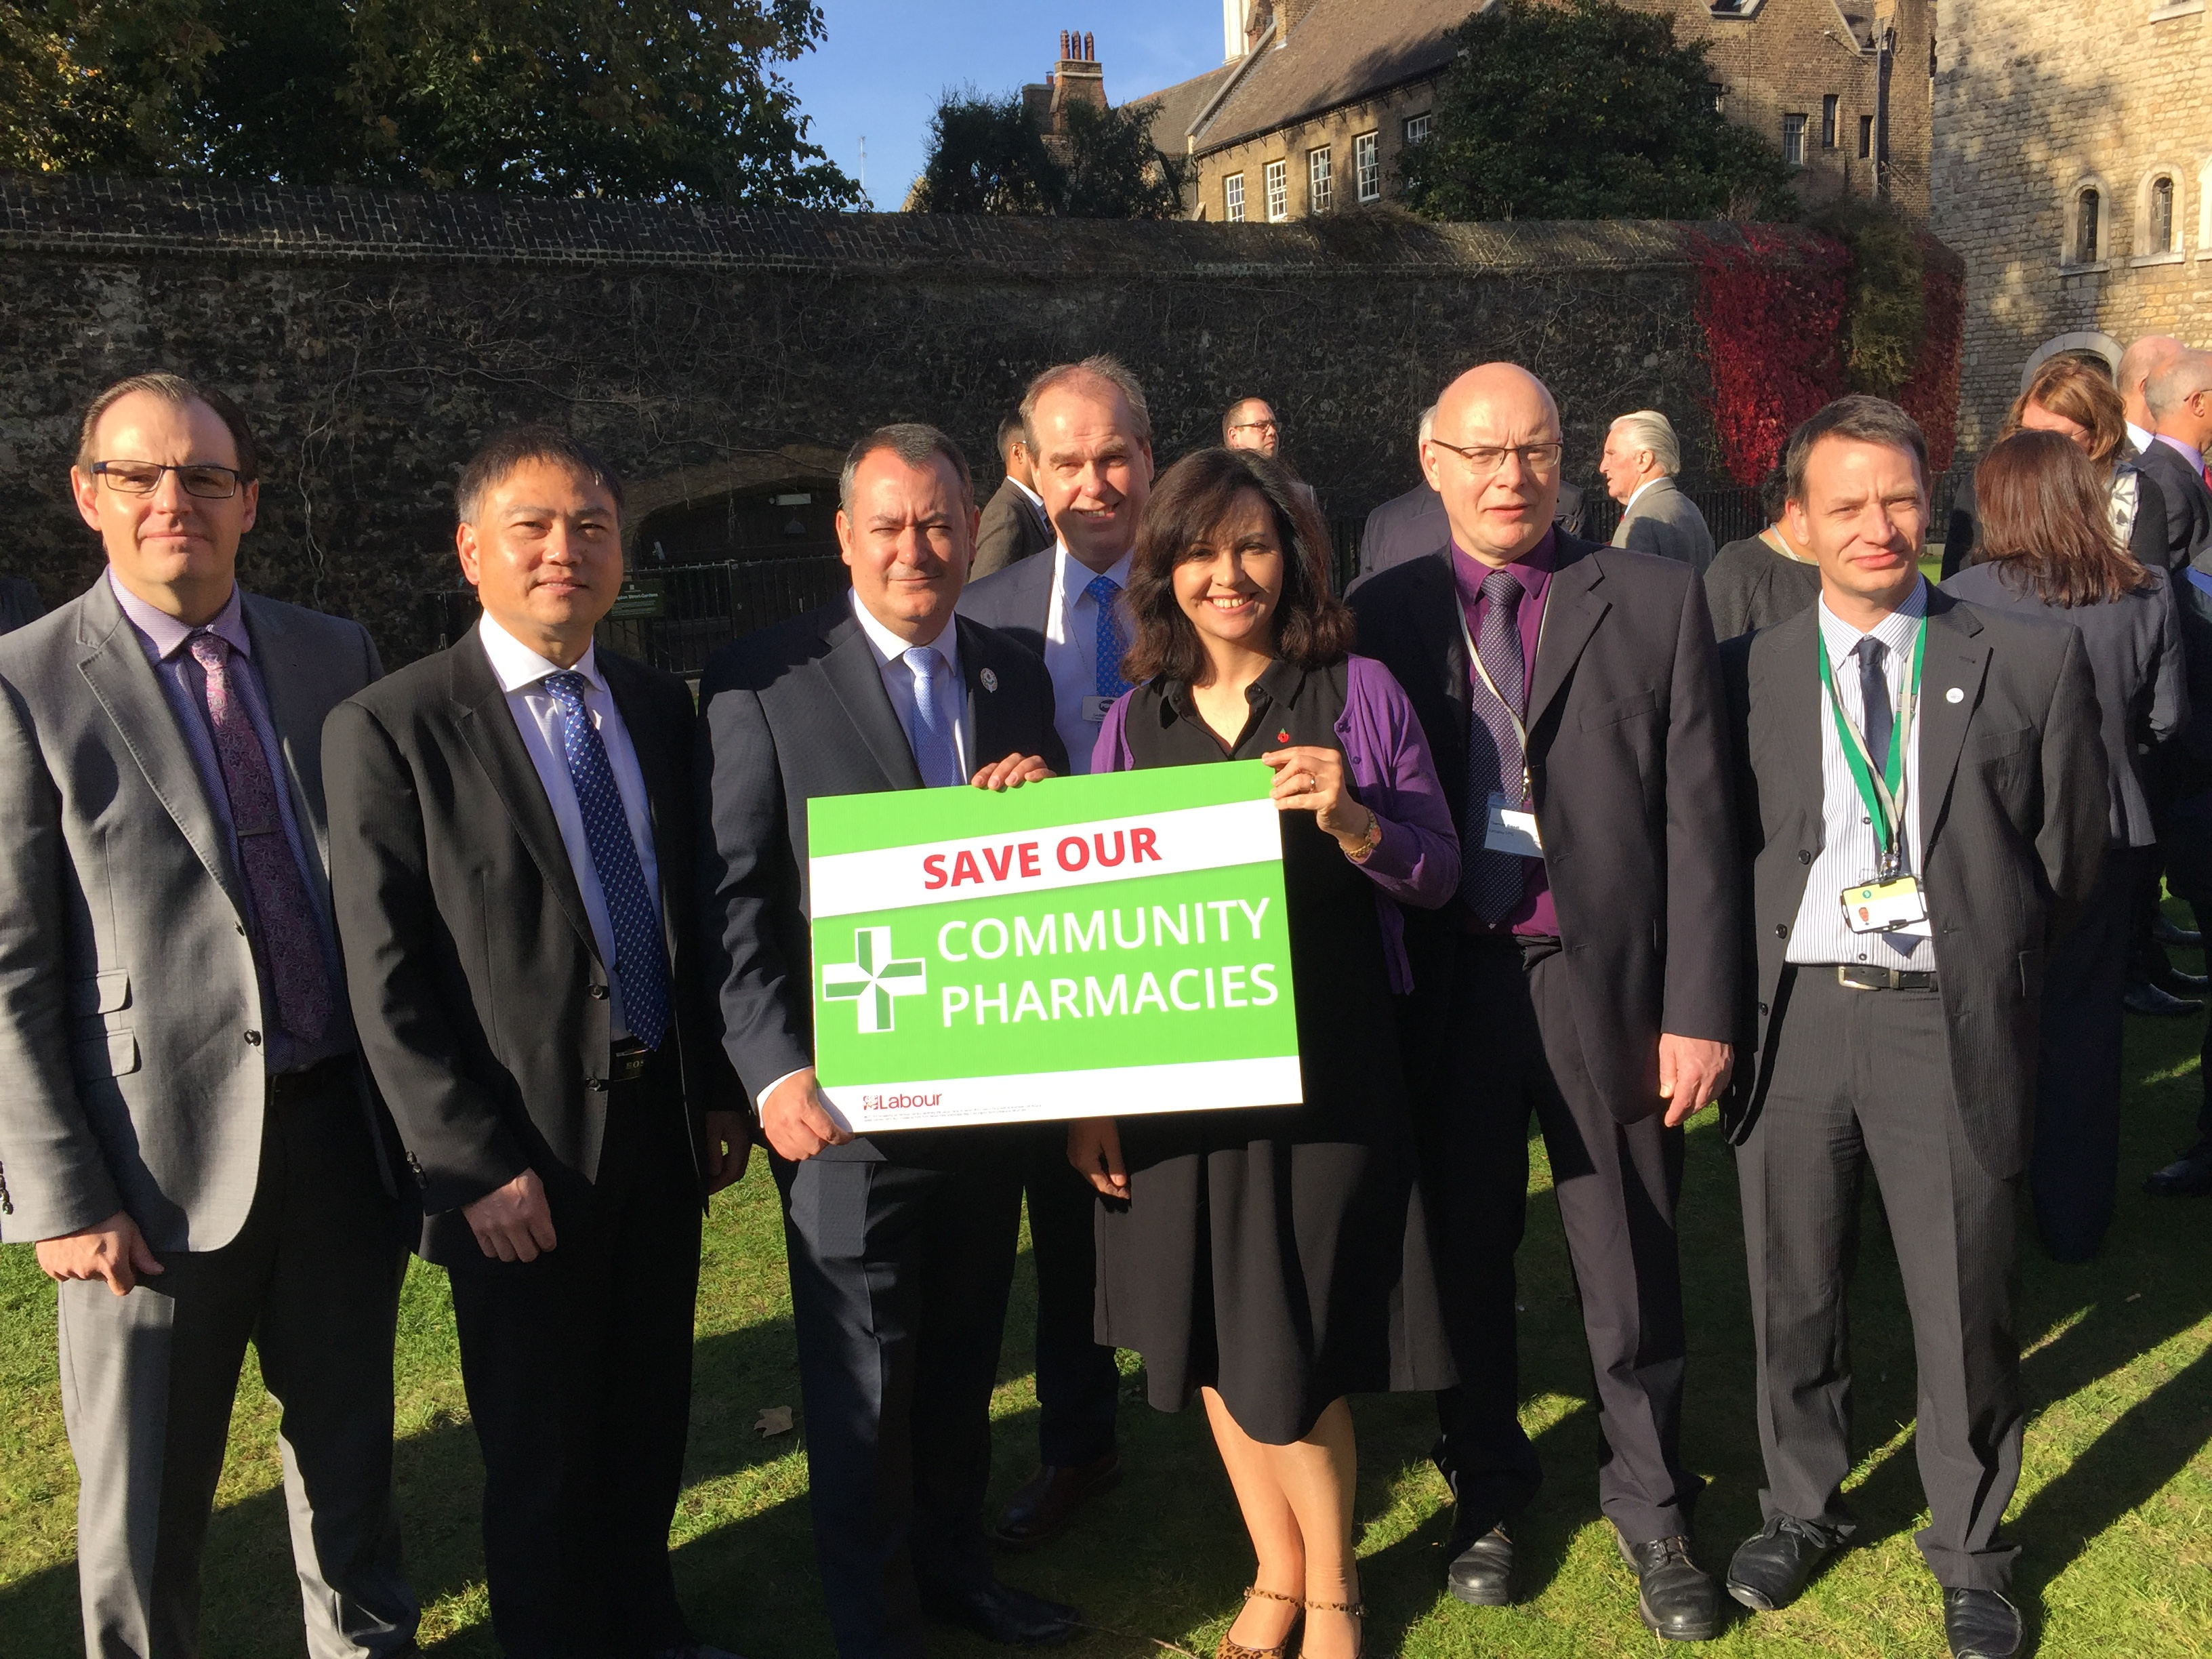 Caroline_and_Michael_Dugher_with_SY_pharmacists.JPG